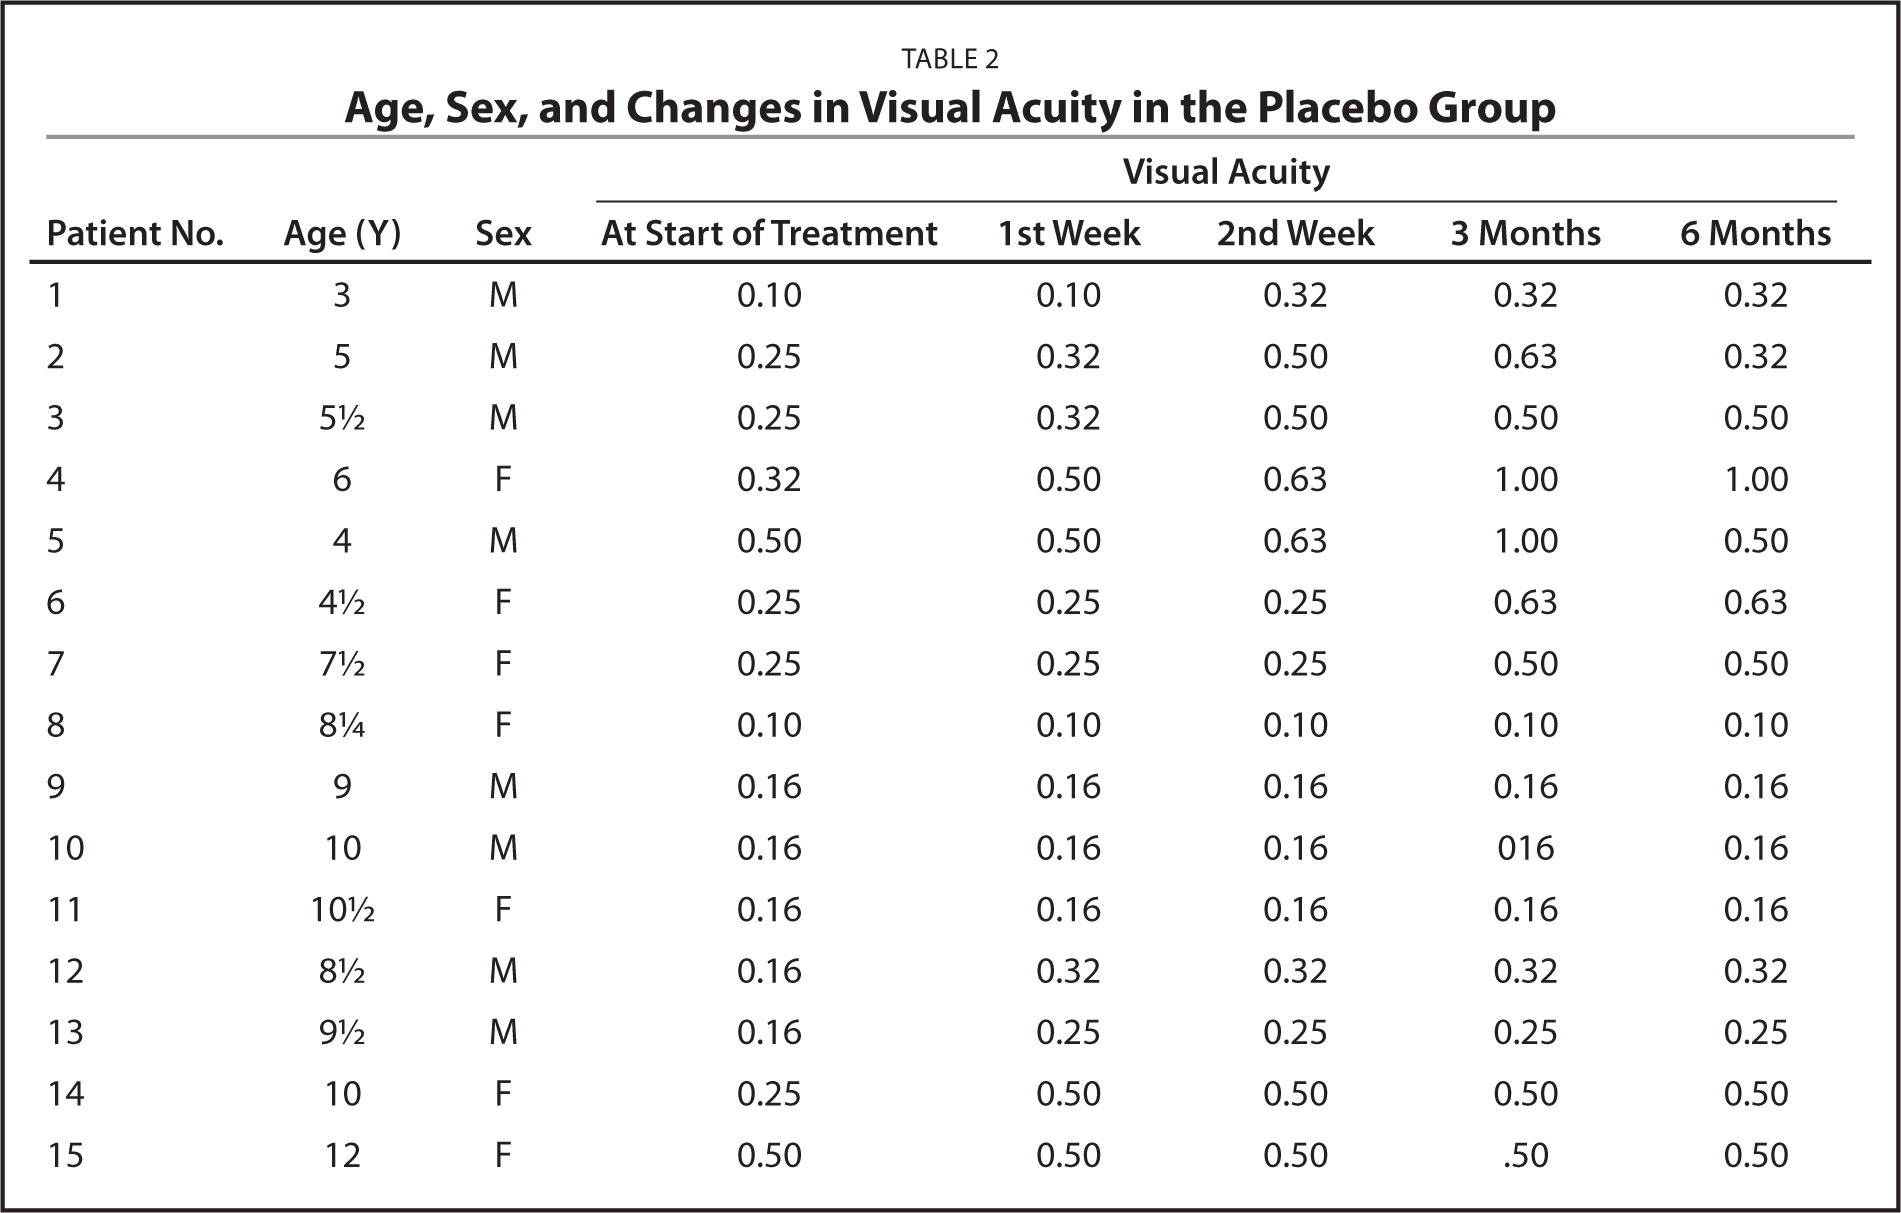 Age, Sex, and Changes in Visual Acuity in the Placebo Group